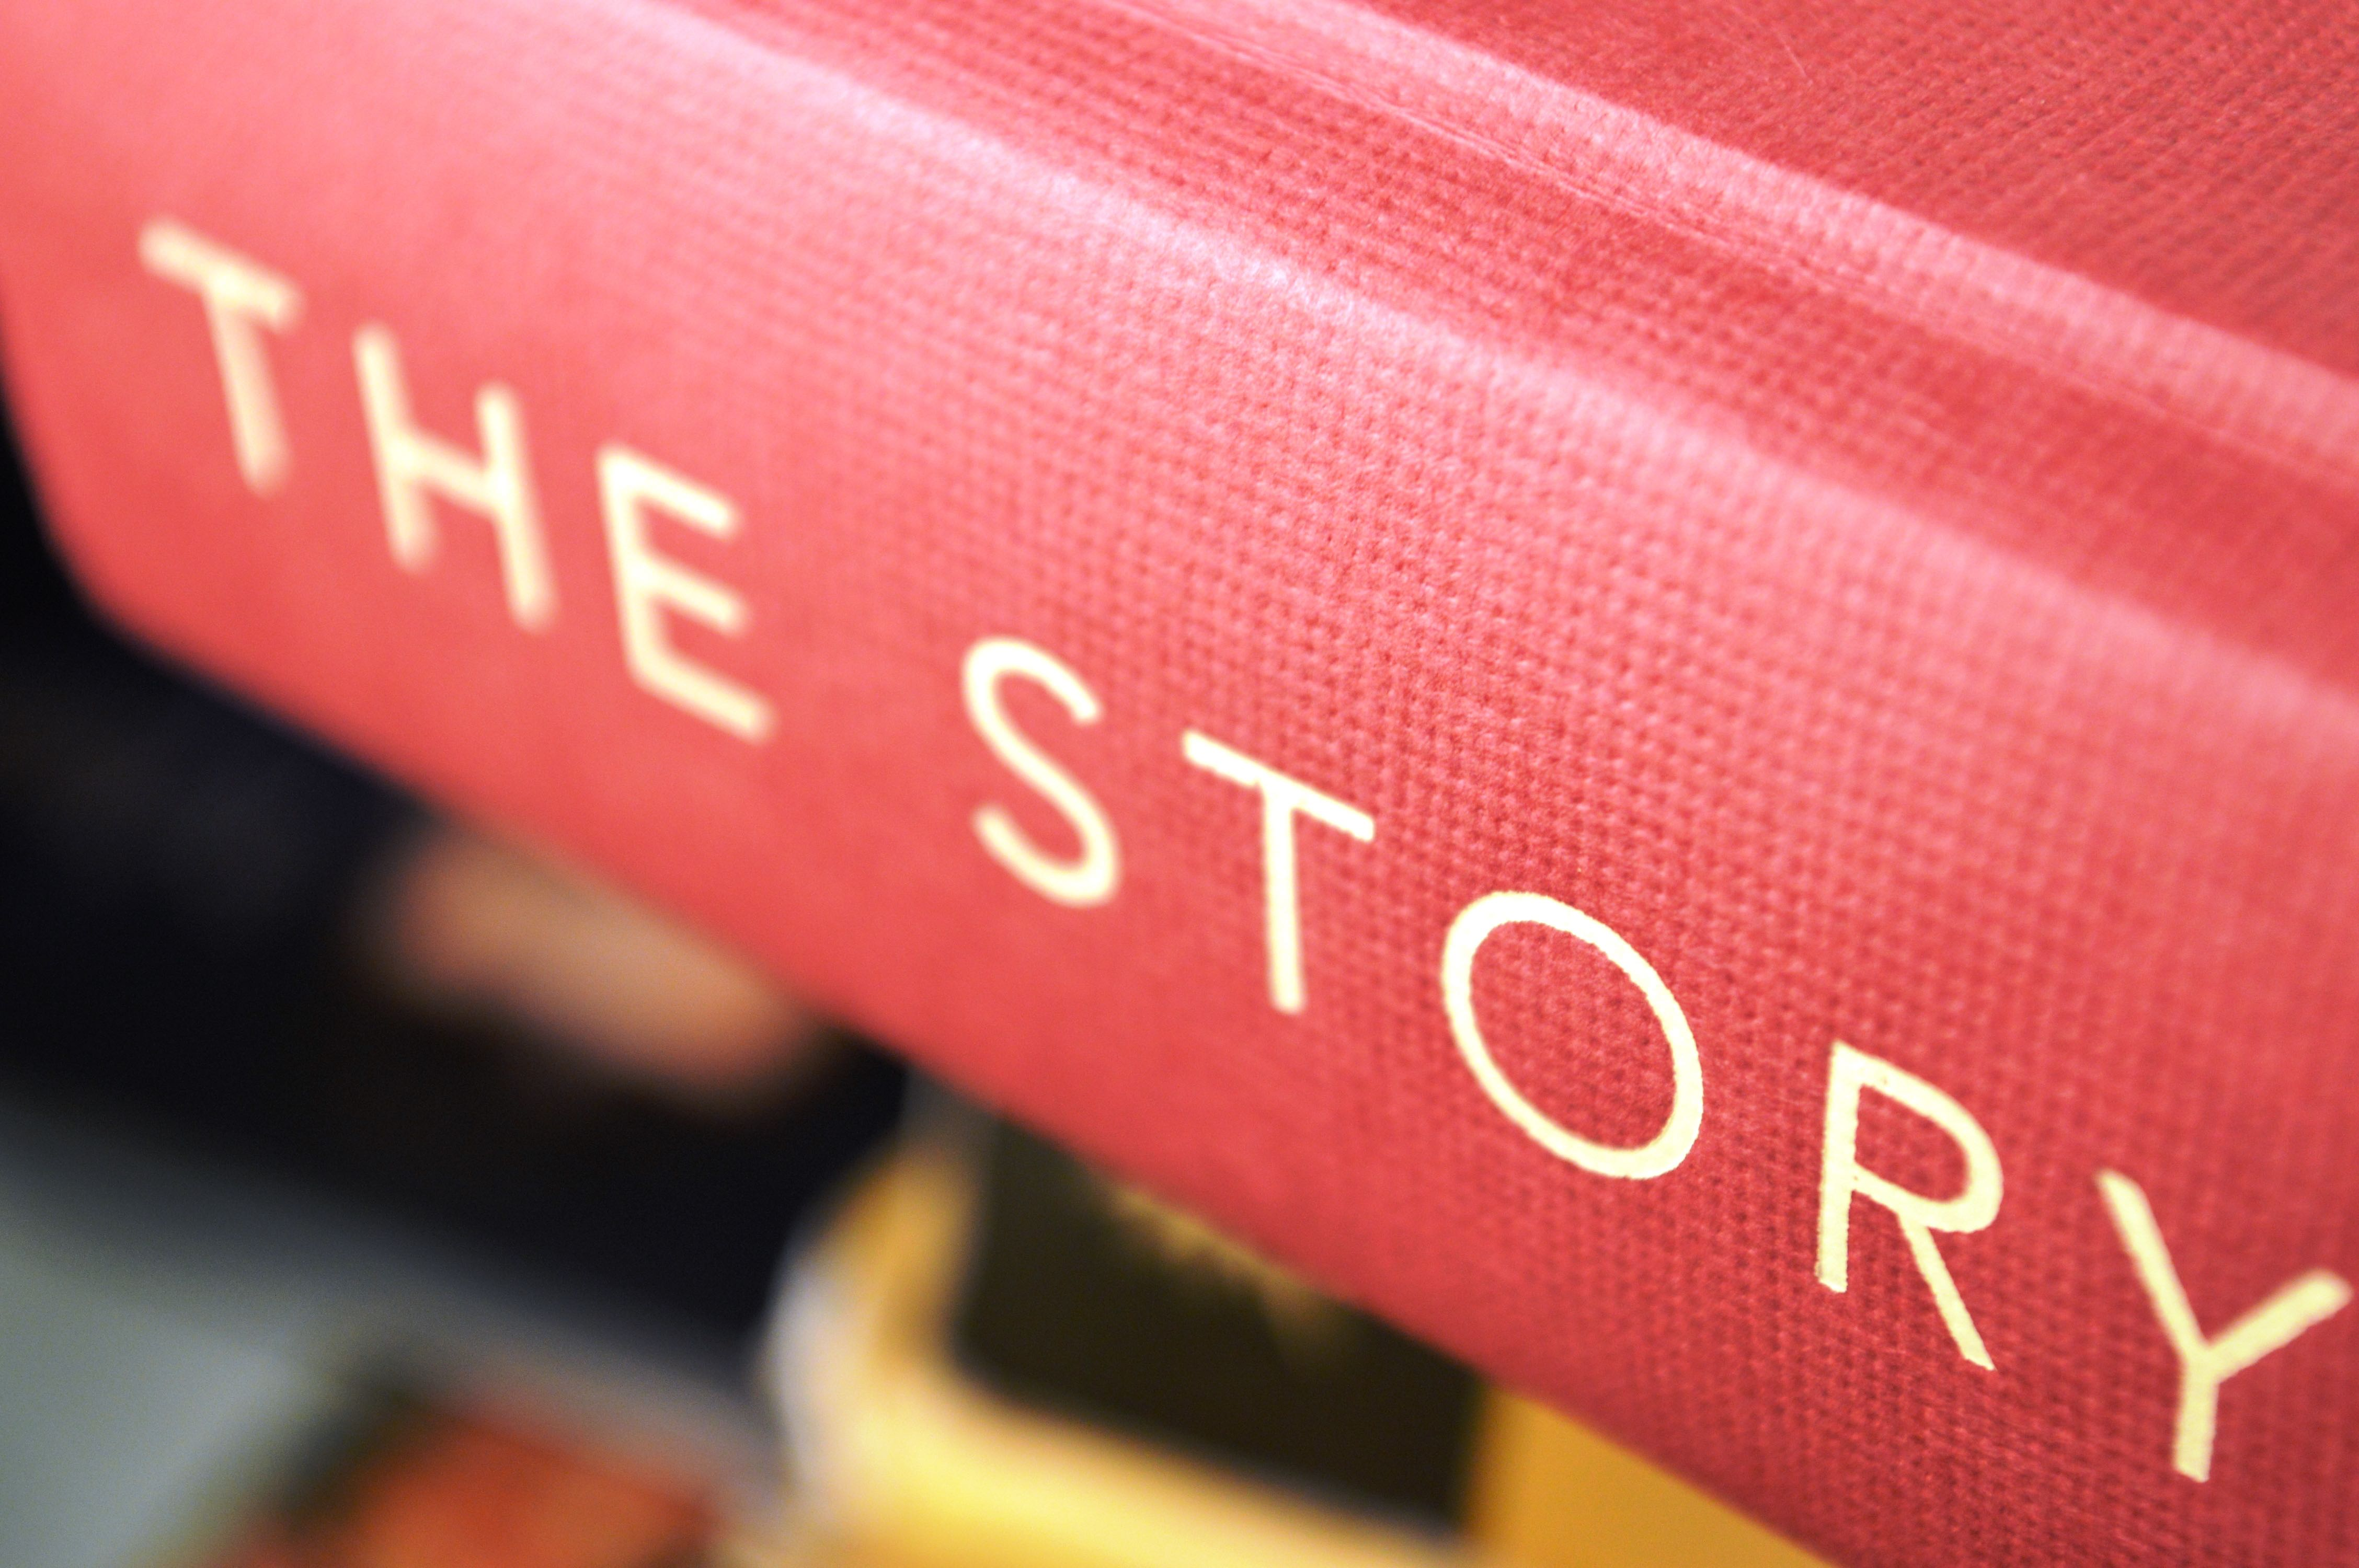 the-story-1243694